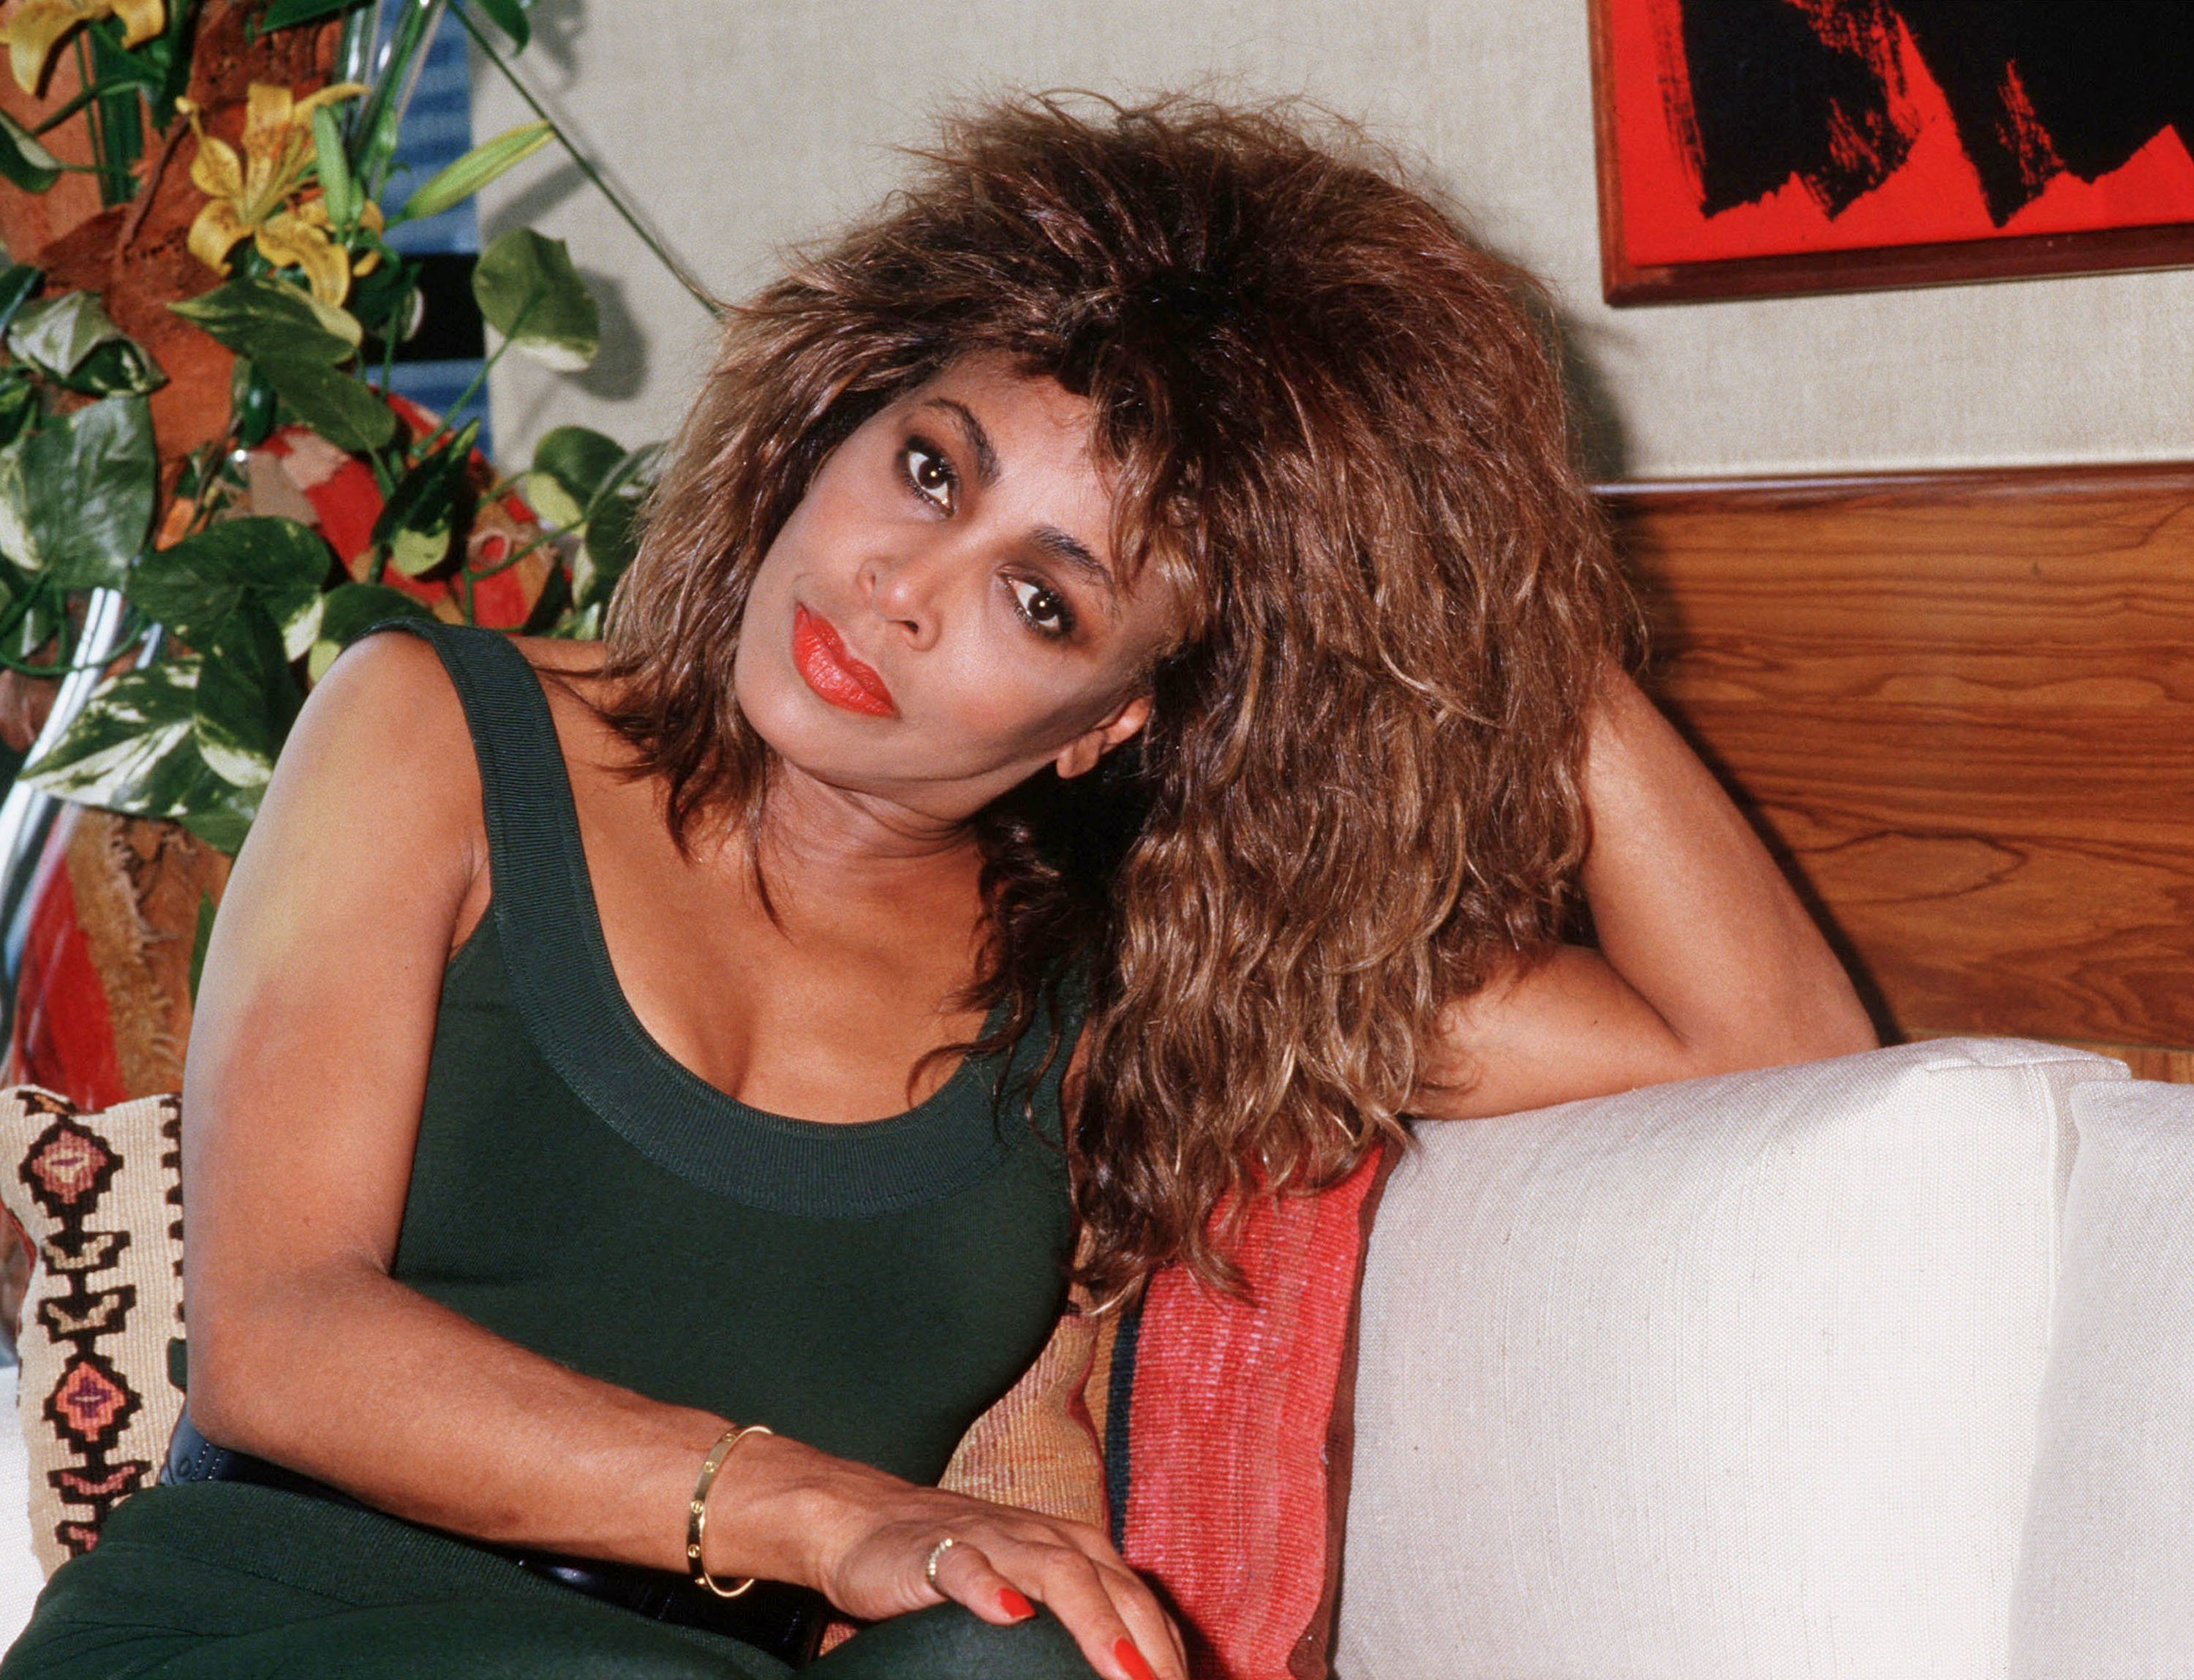 Tina Turner in Rio de Janeiro, Brazil in 1988. | Source: Getty Images.